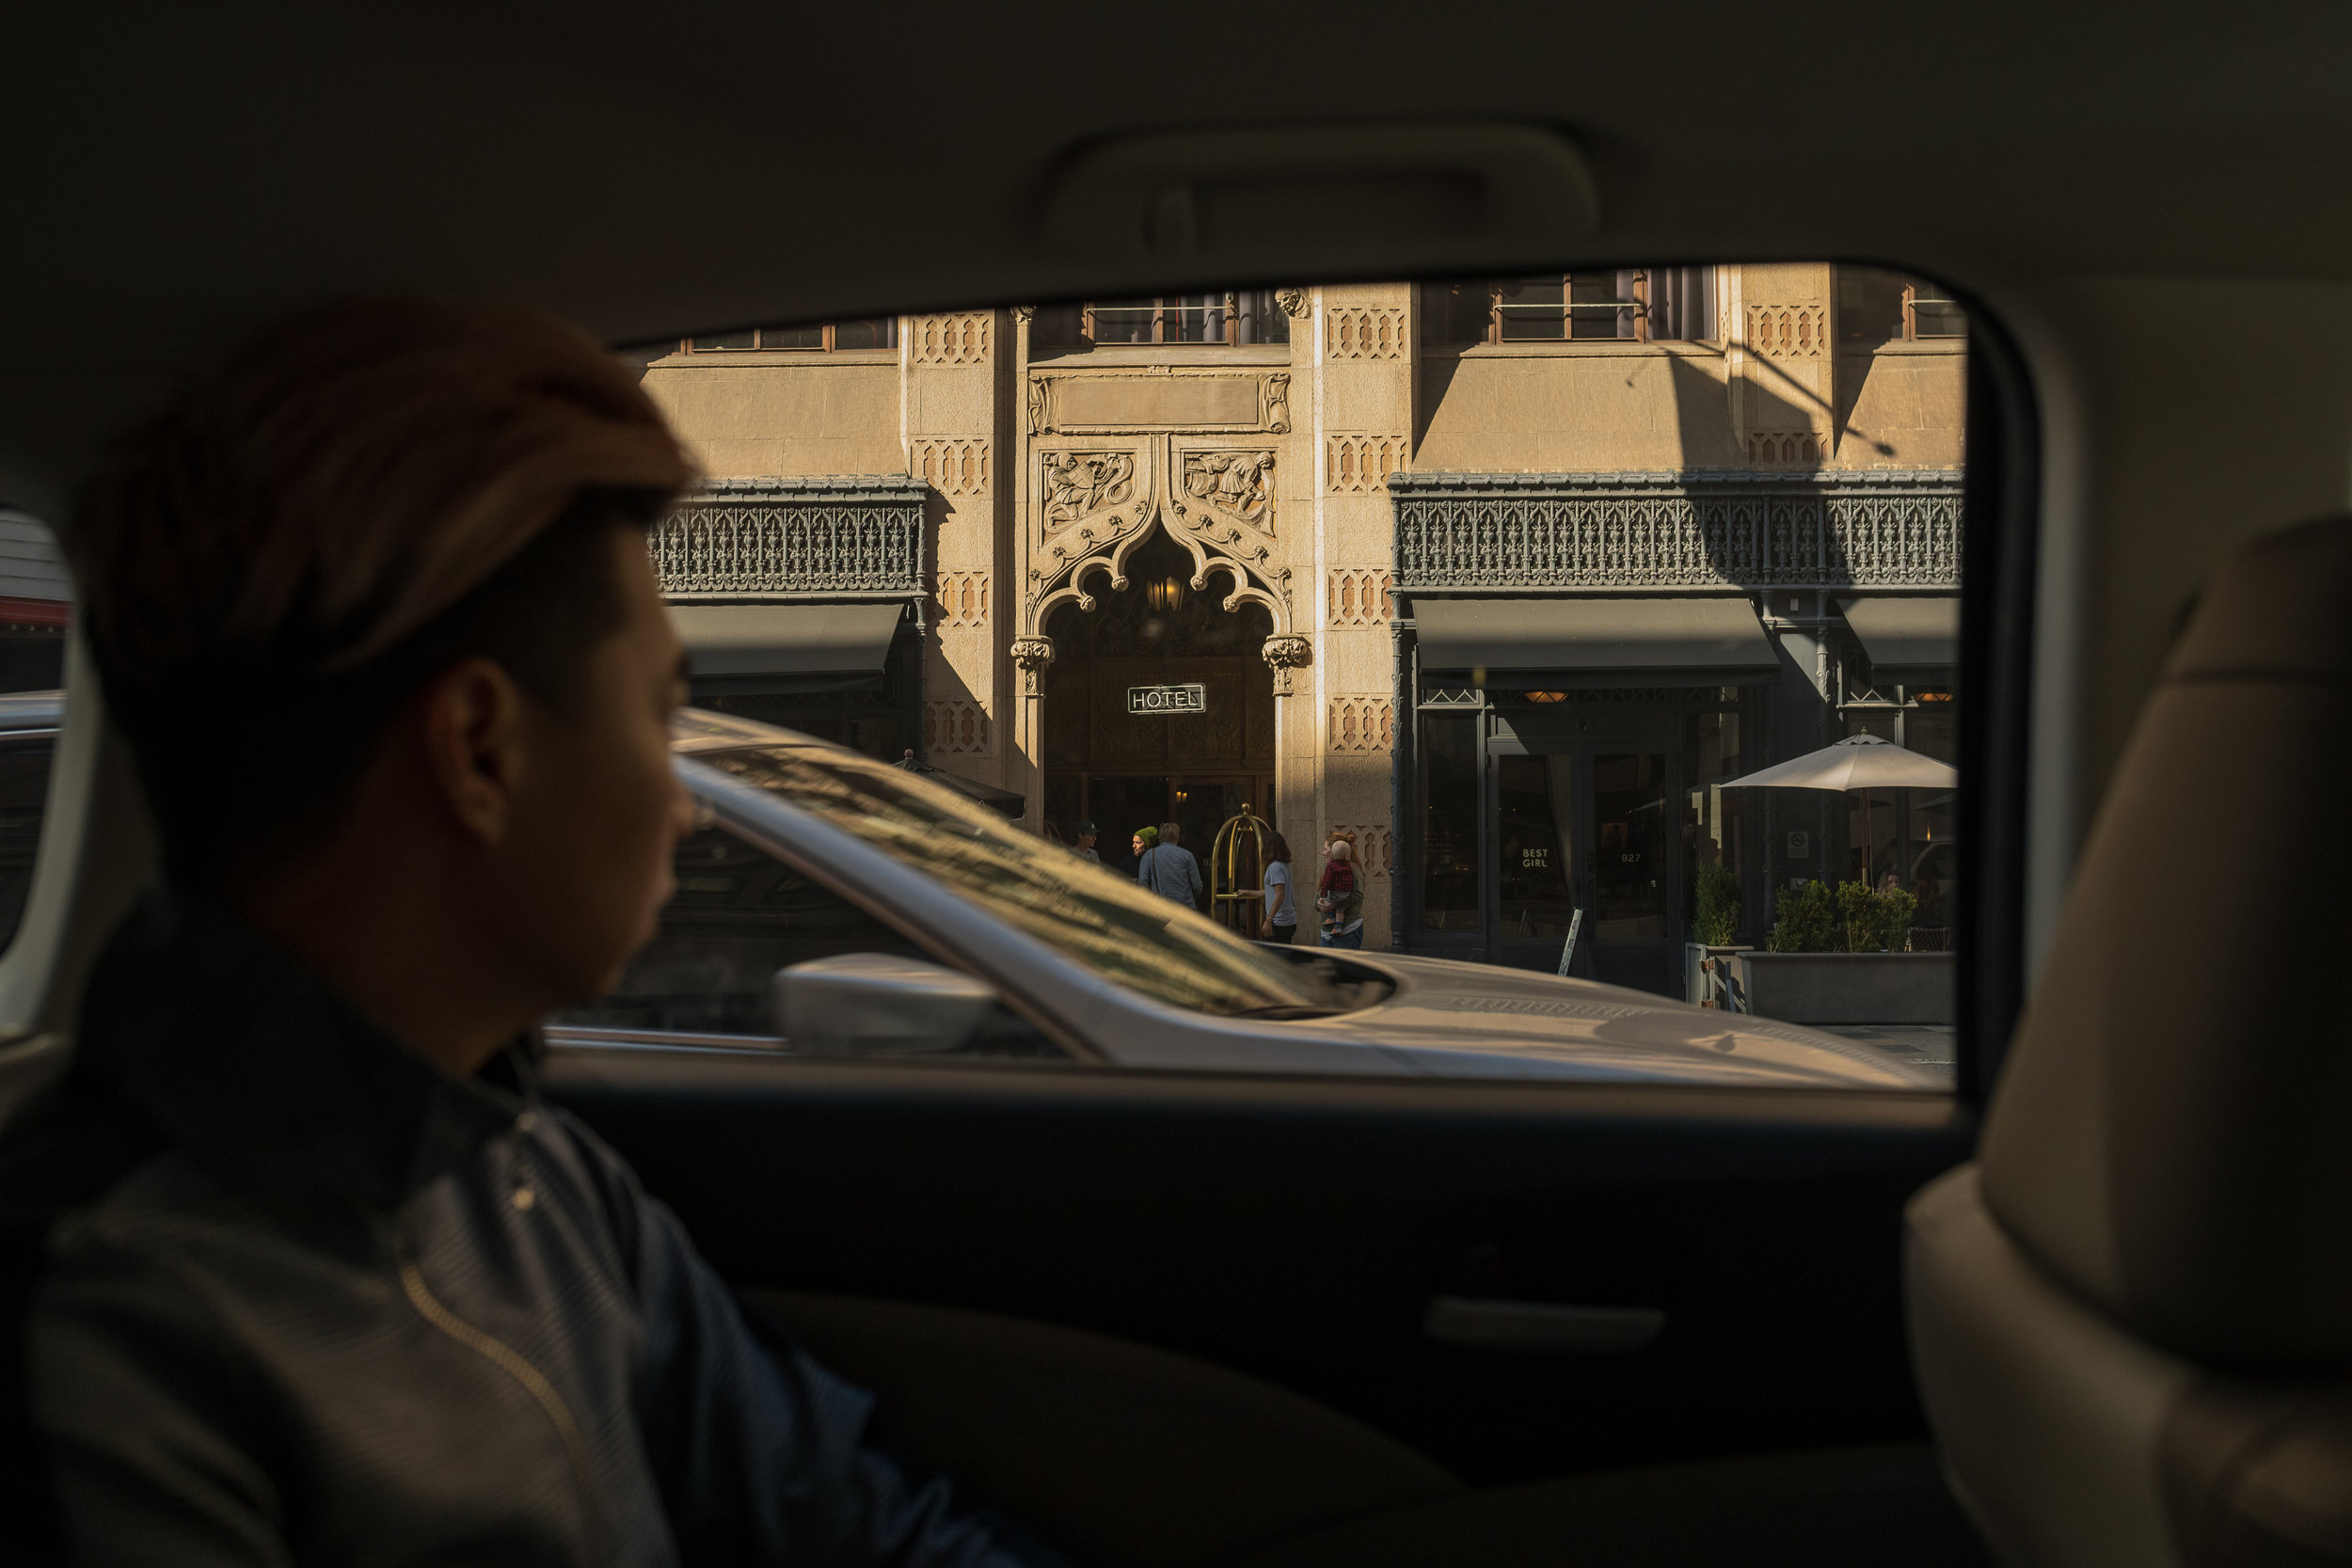 MYBELONGING-UBER-DOORS-ARE-ALWAYS-OPENING-DOWNTOWN-LOS-ANGELES-STREETSTYLE-PHOTOGRAPHY31.jpg